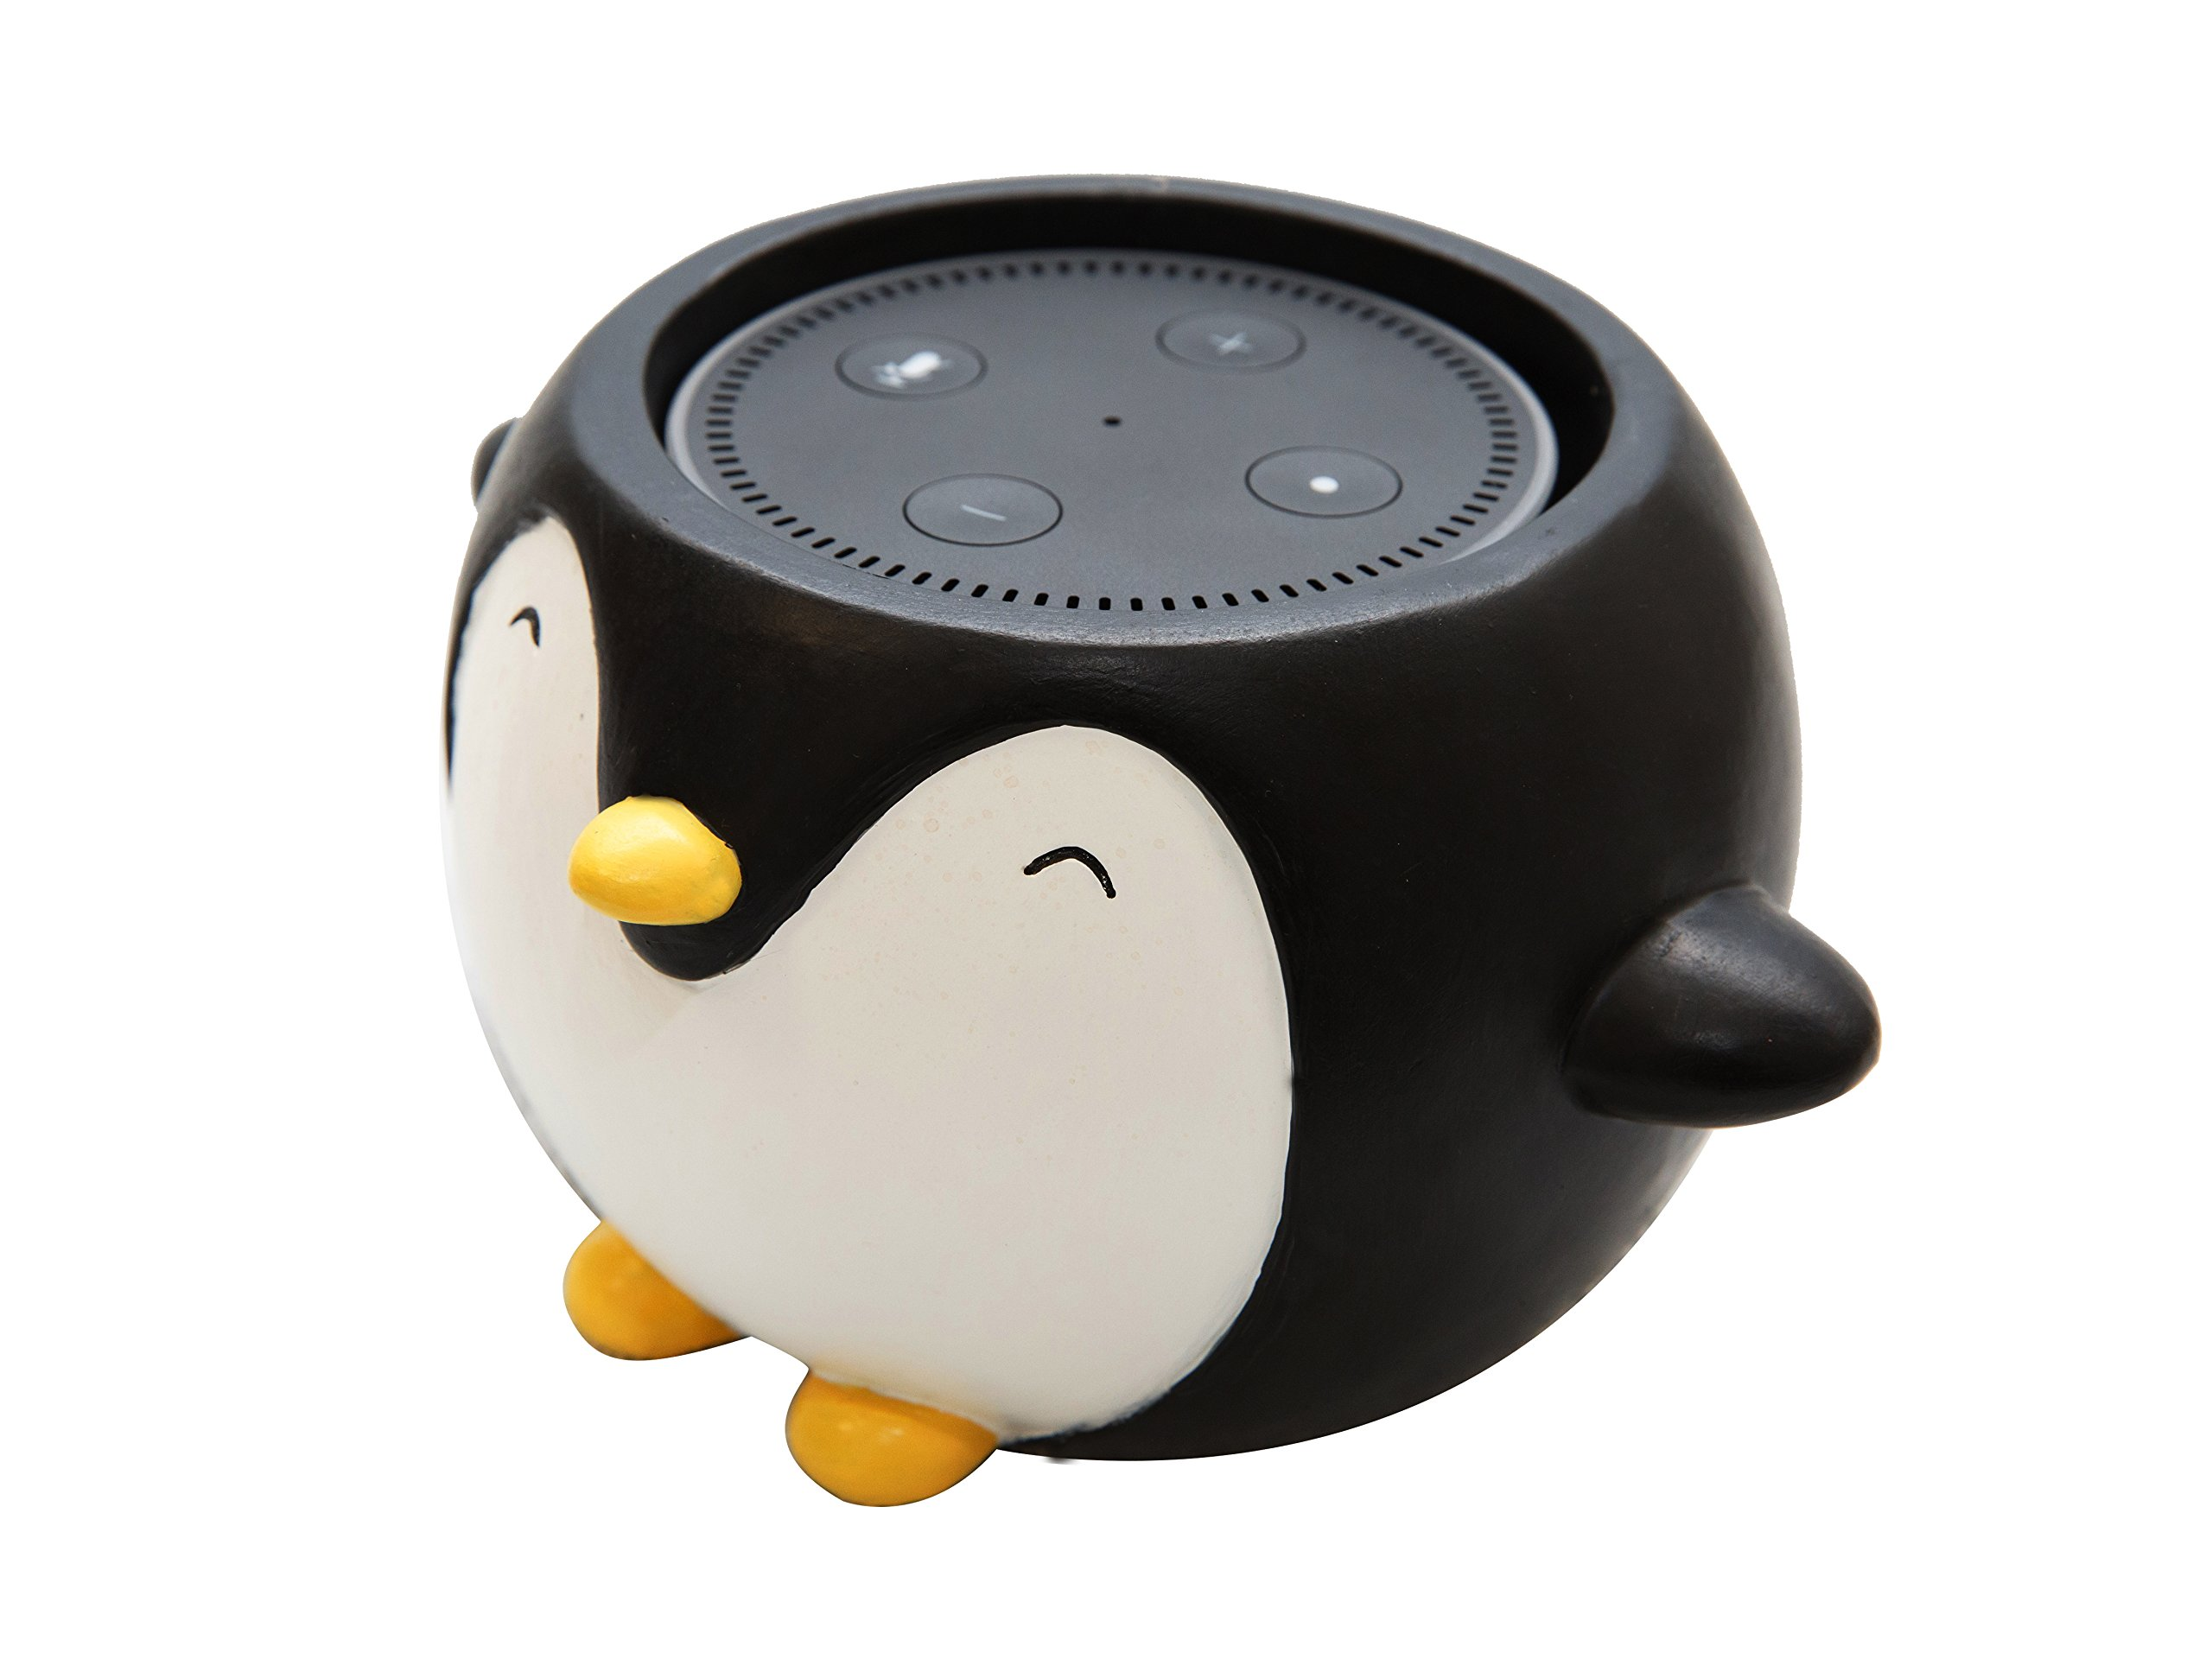 Penguin Holder Stand Mount for Alexa Echo Dot, Bose, Anker, Home Mini round speakers Accessories (Penguin Theme)